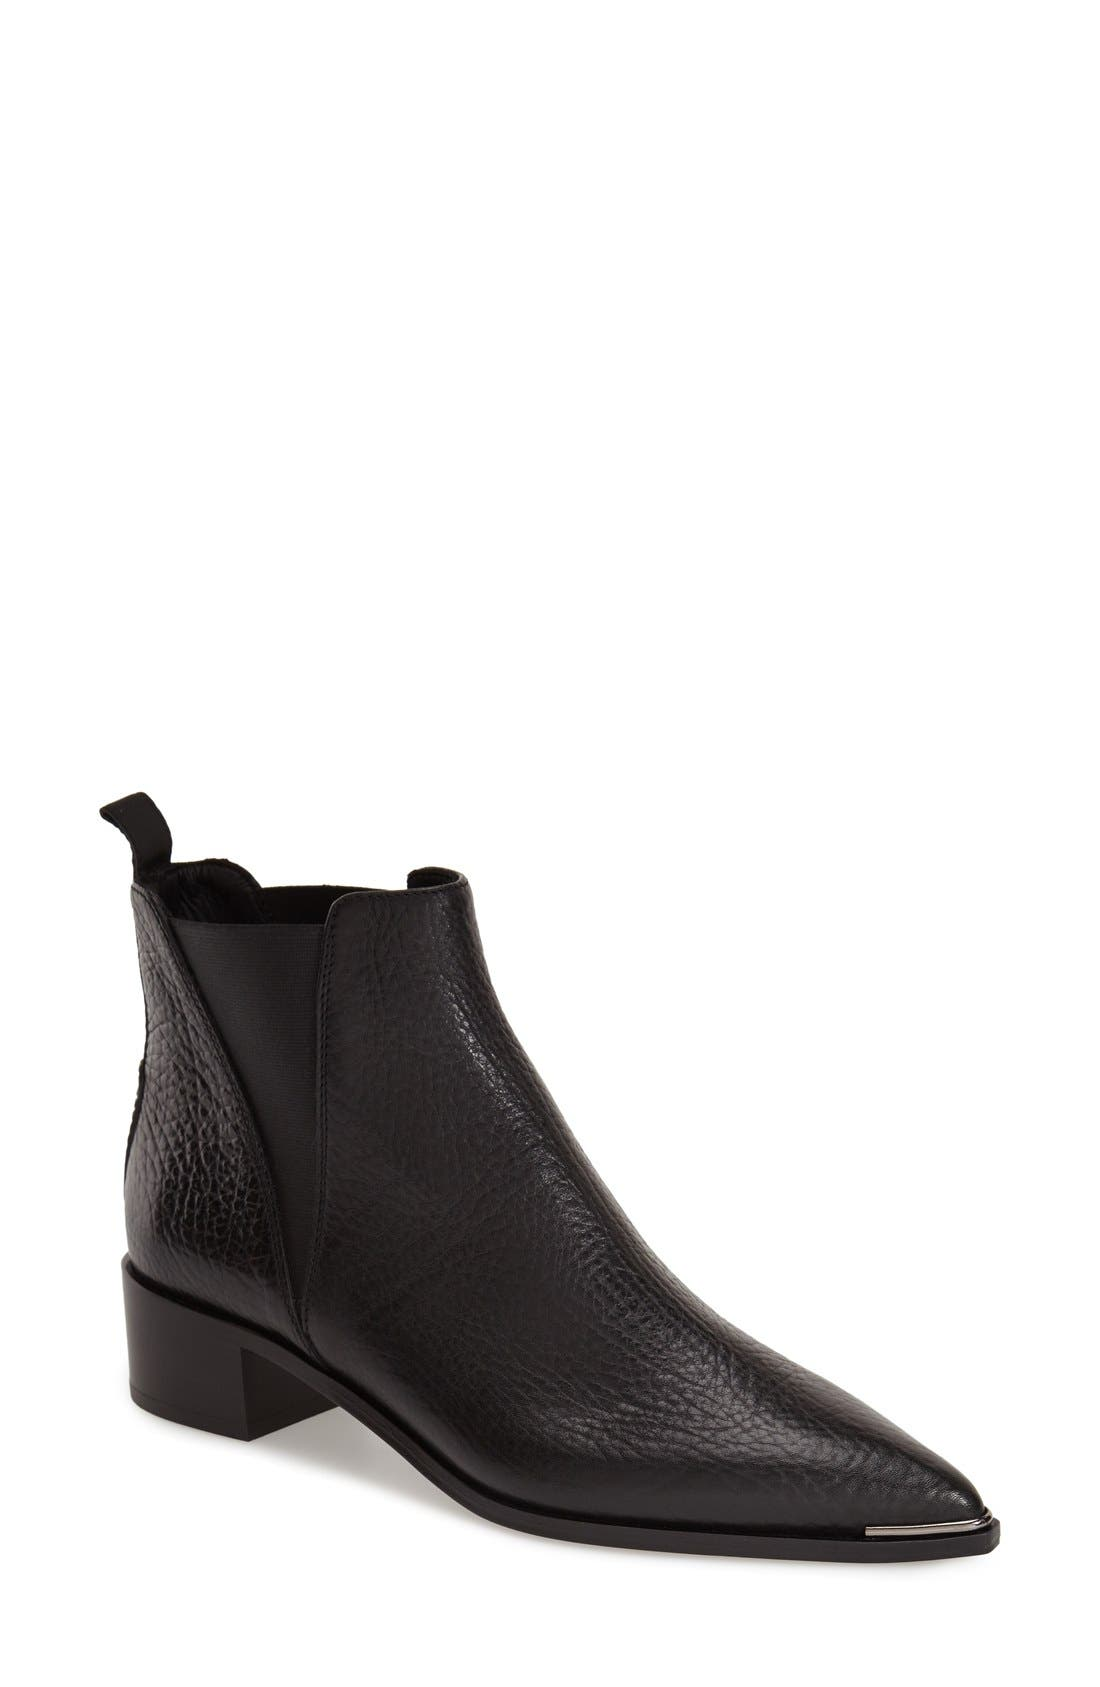 Jensen Pointy Toe Bootie,                             Main thumbnail 1, color,                             BLACK GRAIN LEATHER